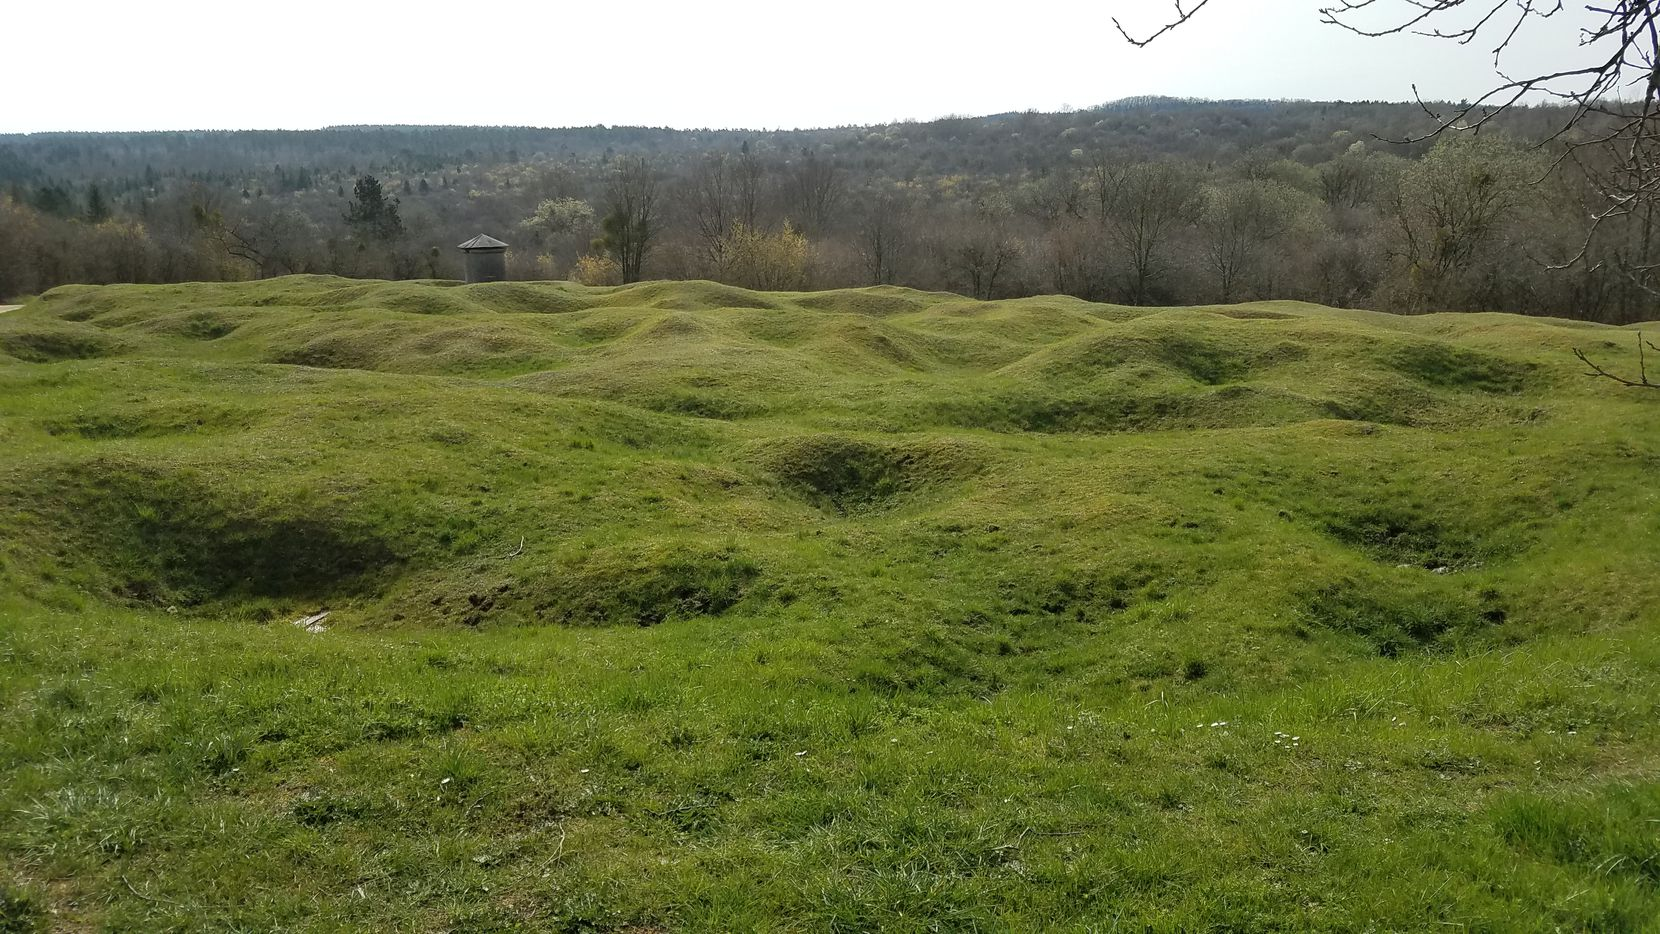 The ground still bears the scars of the tens of millions of artillery shells fired during the Battle of Verdun, which raged for 10 months in 1916.